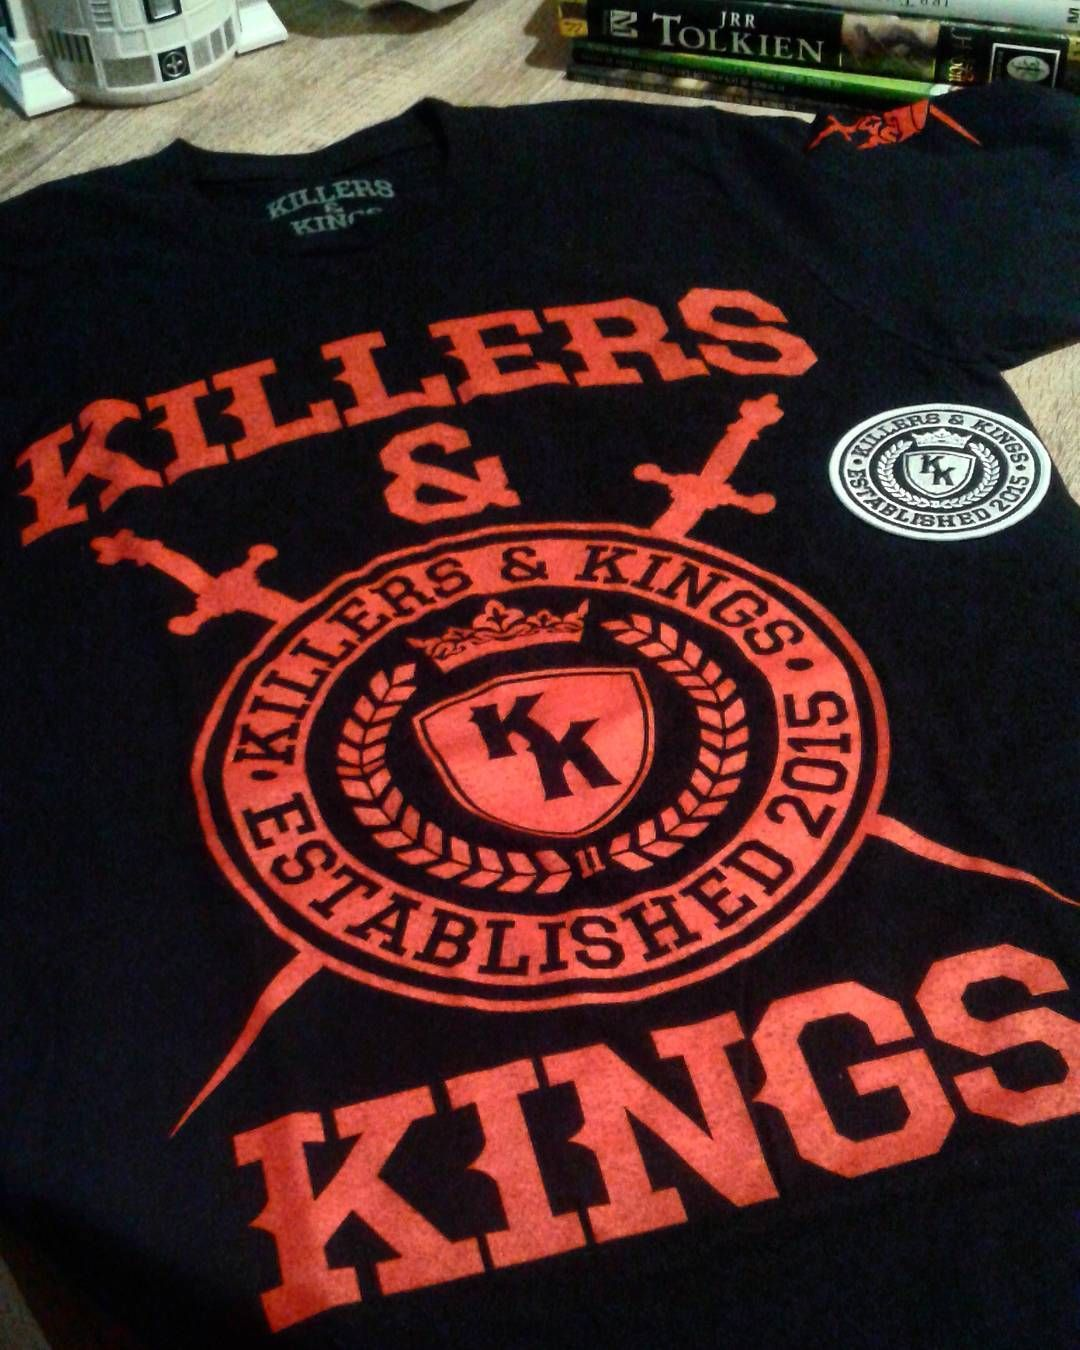 Got my Killers & Kings t-shirt and patch \\m/\\m/ They\'ve got some ...